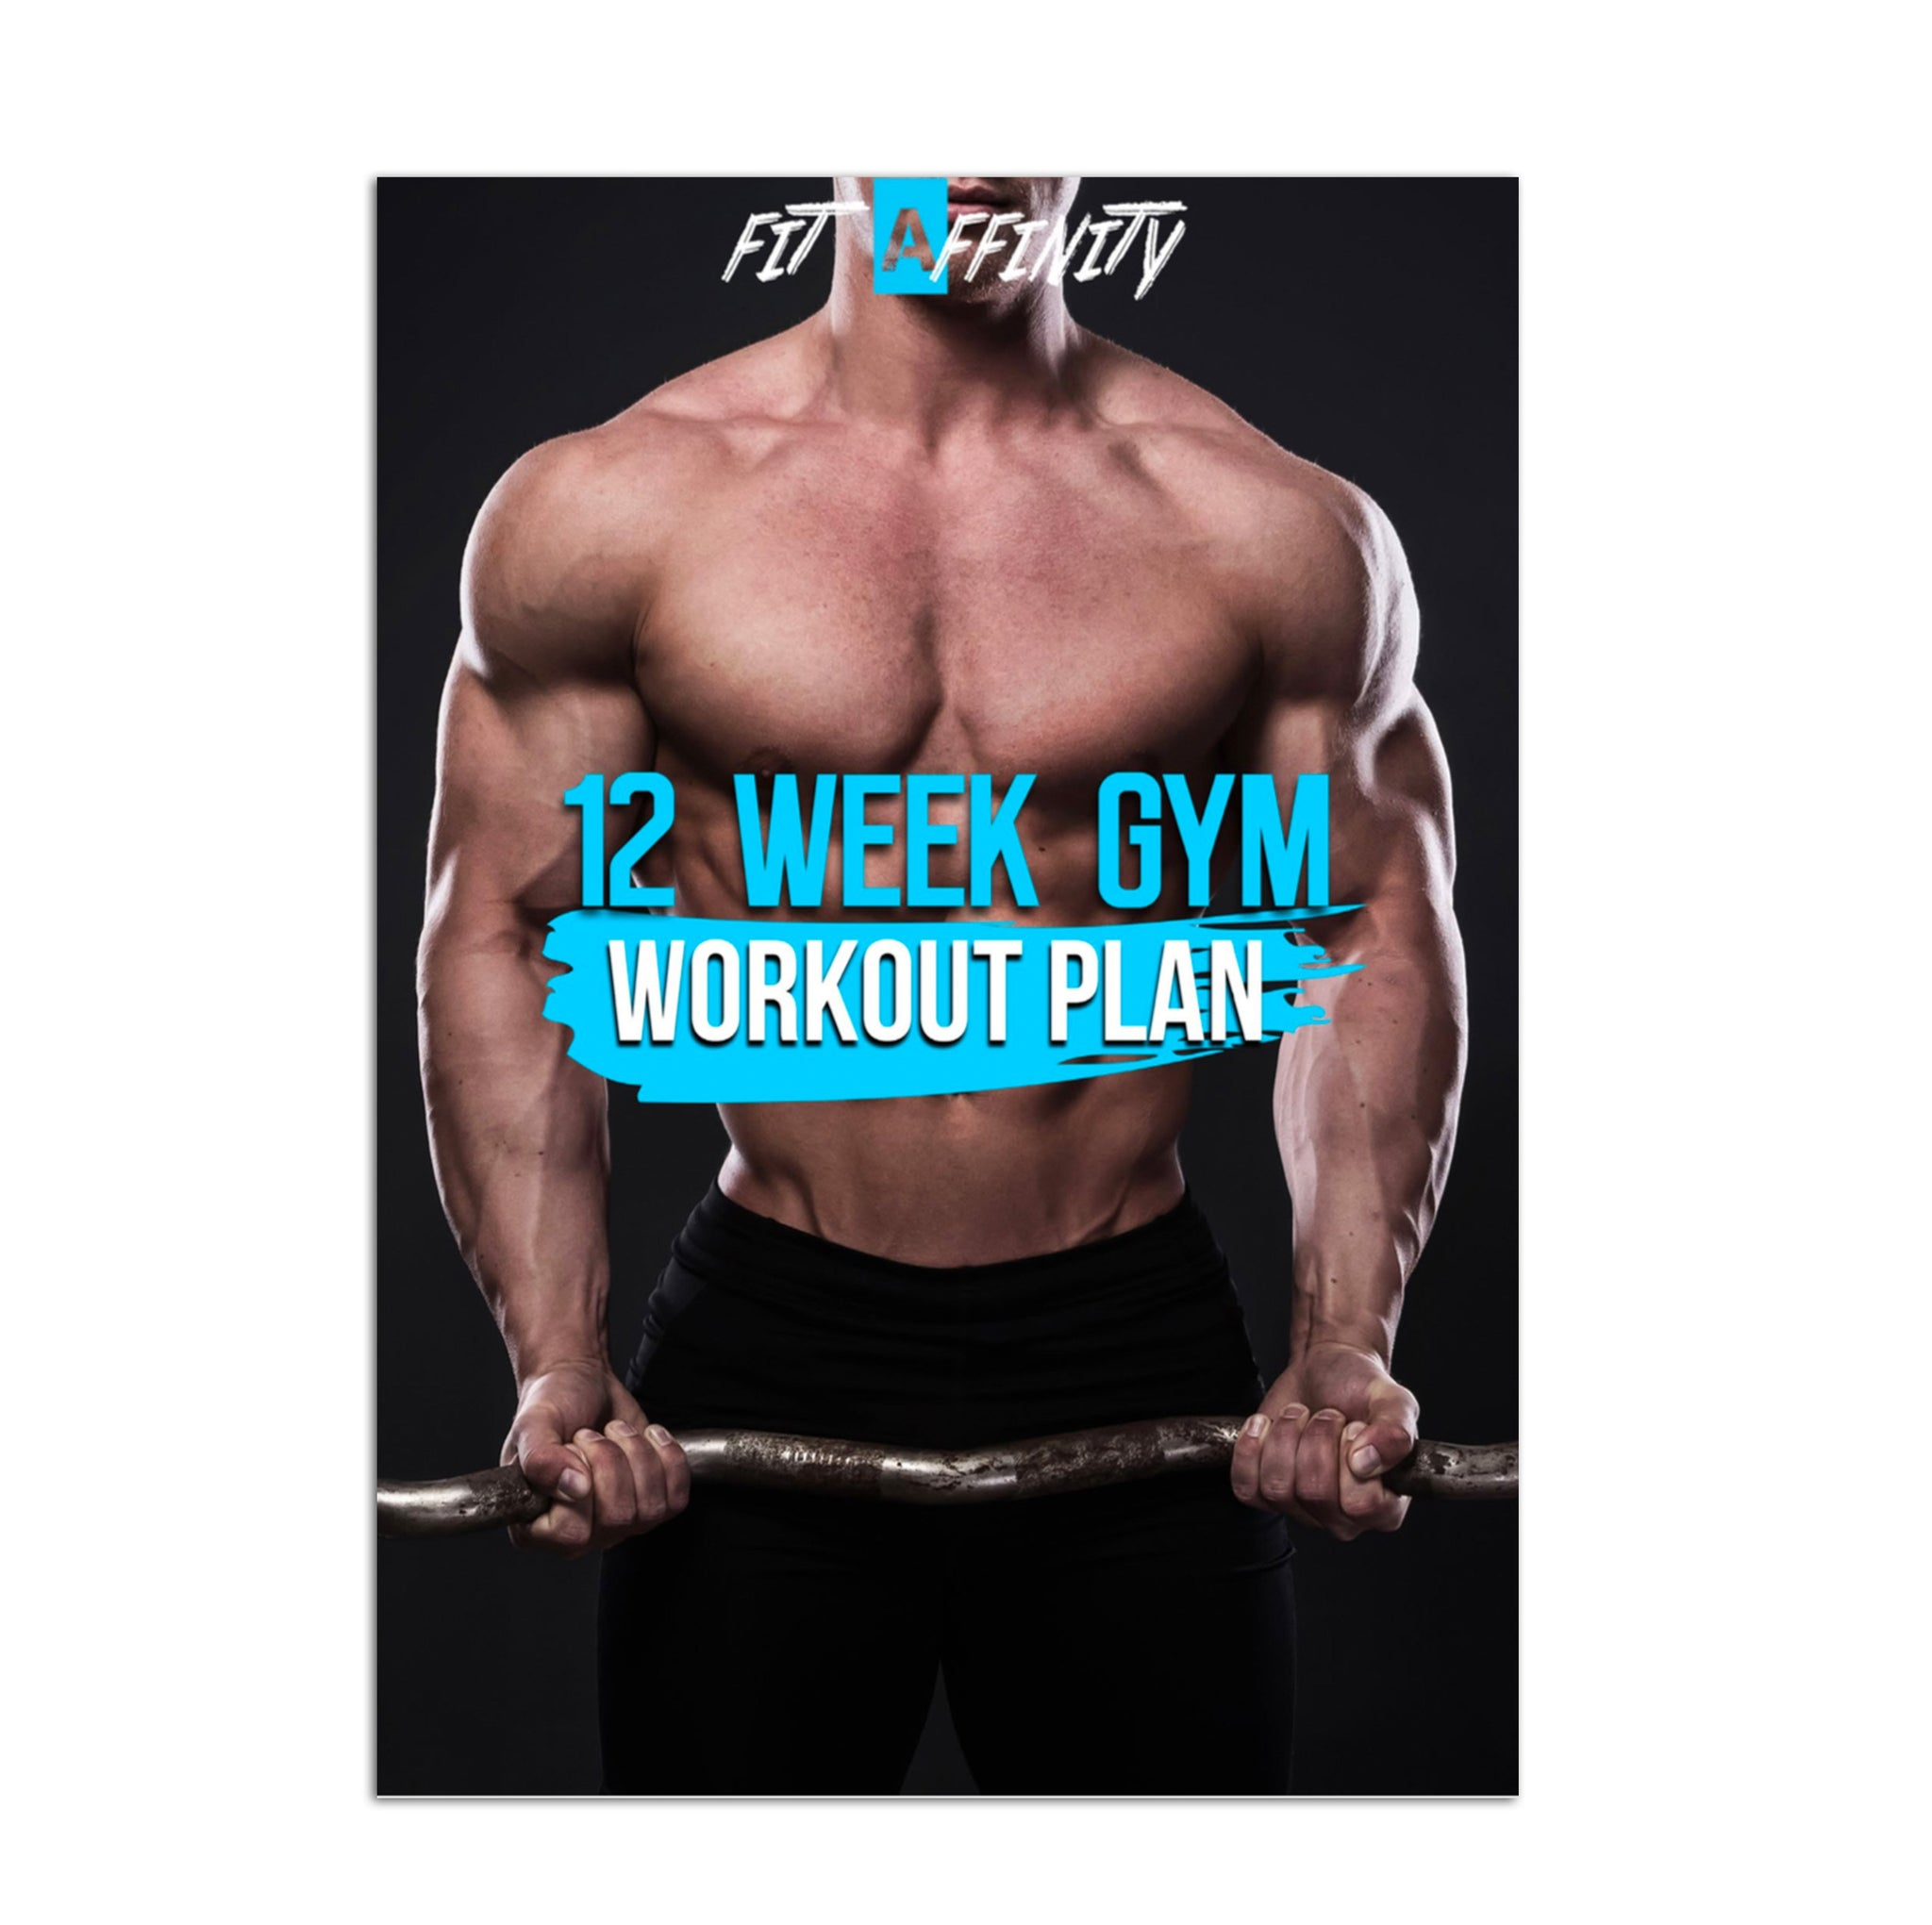 12 Week Gym Workout Plan For Men